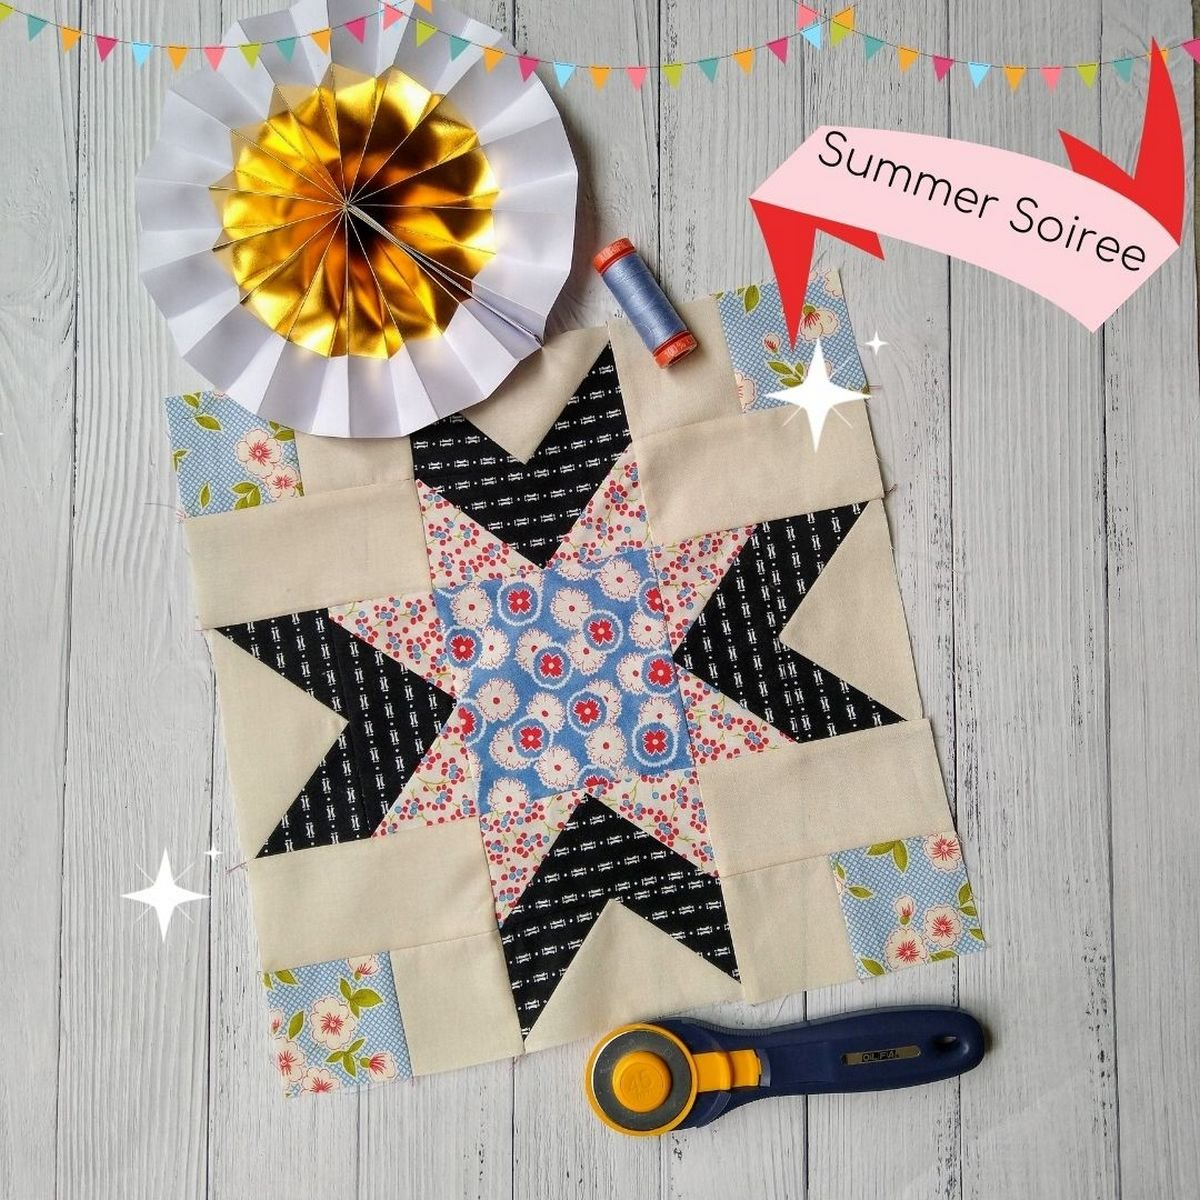 Summer Soiree Sew Along Block 5 Add Some Style